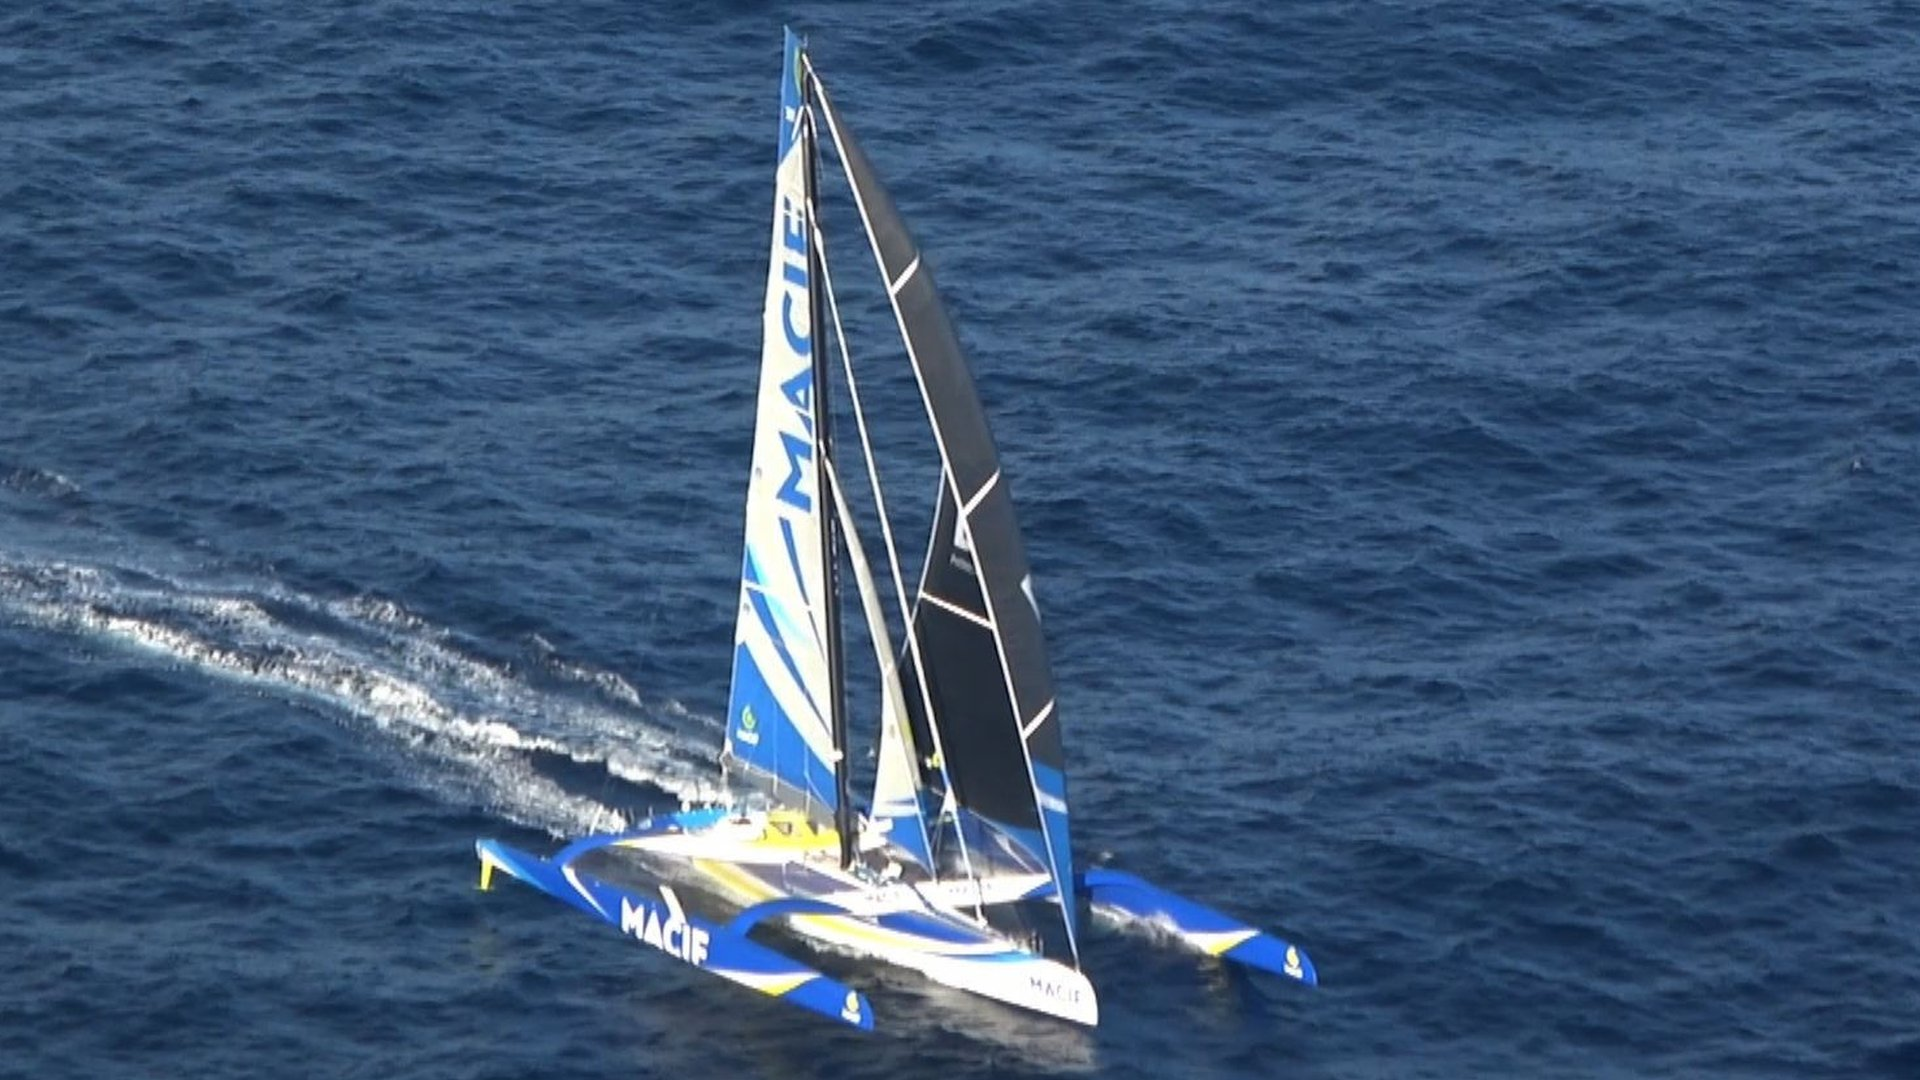 François Gabart: French sailor slashes around the world solo record